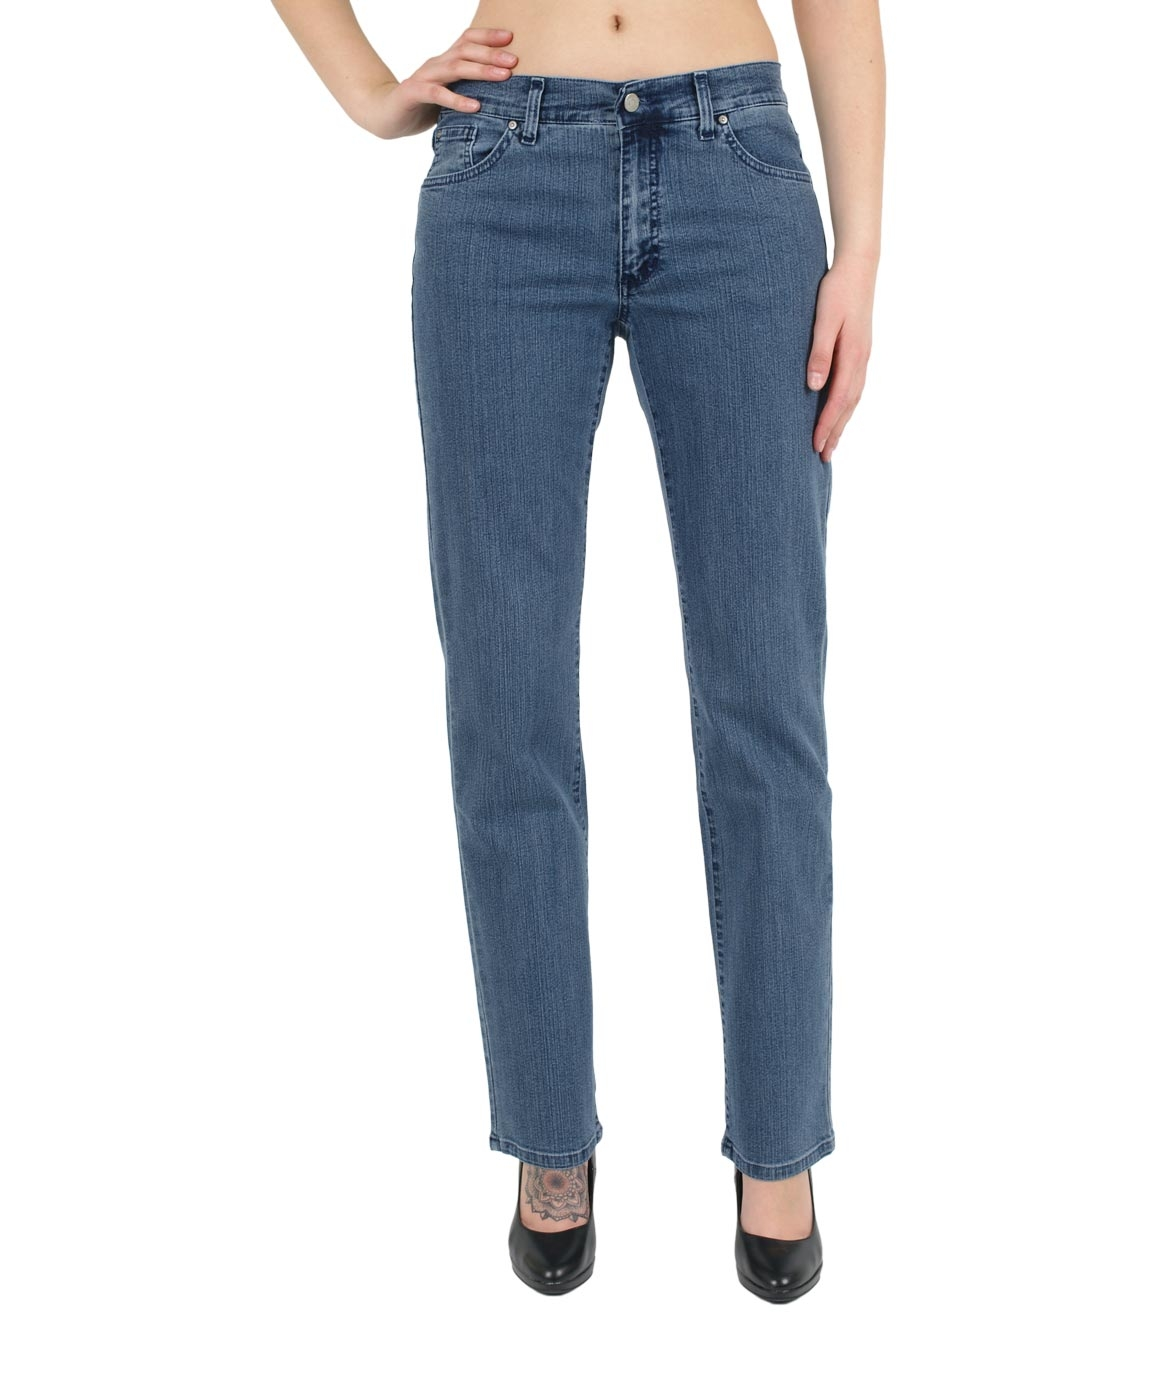 Hosen - Angels Straight Leg Jeans Dolly in Superstone  - Onlineshop Jeans Meile